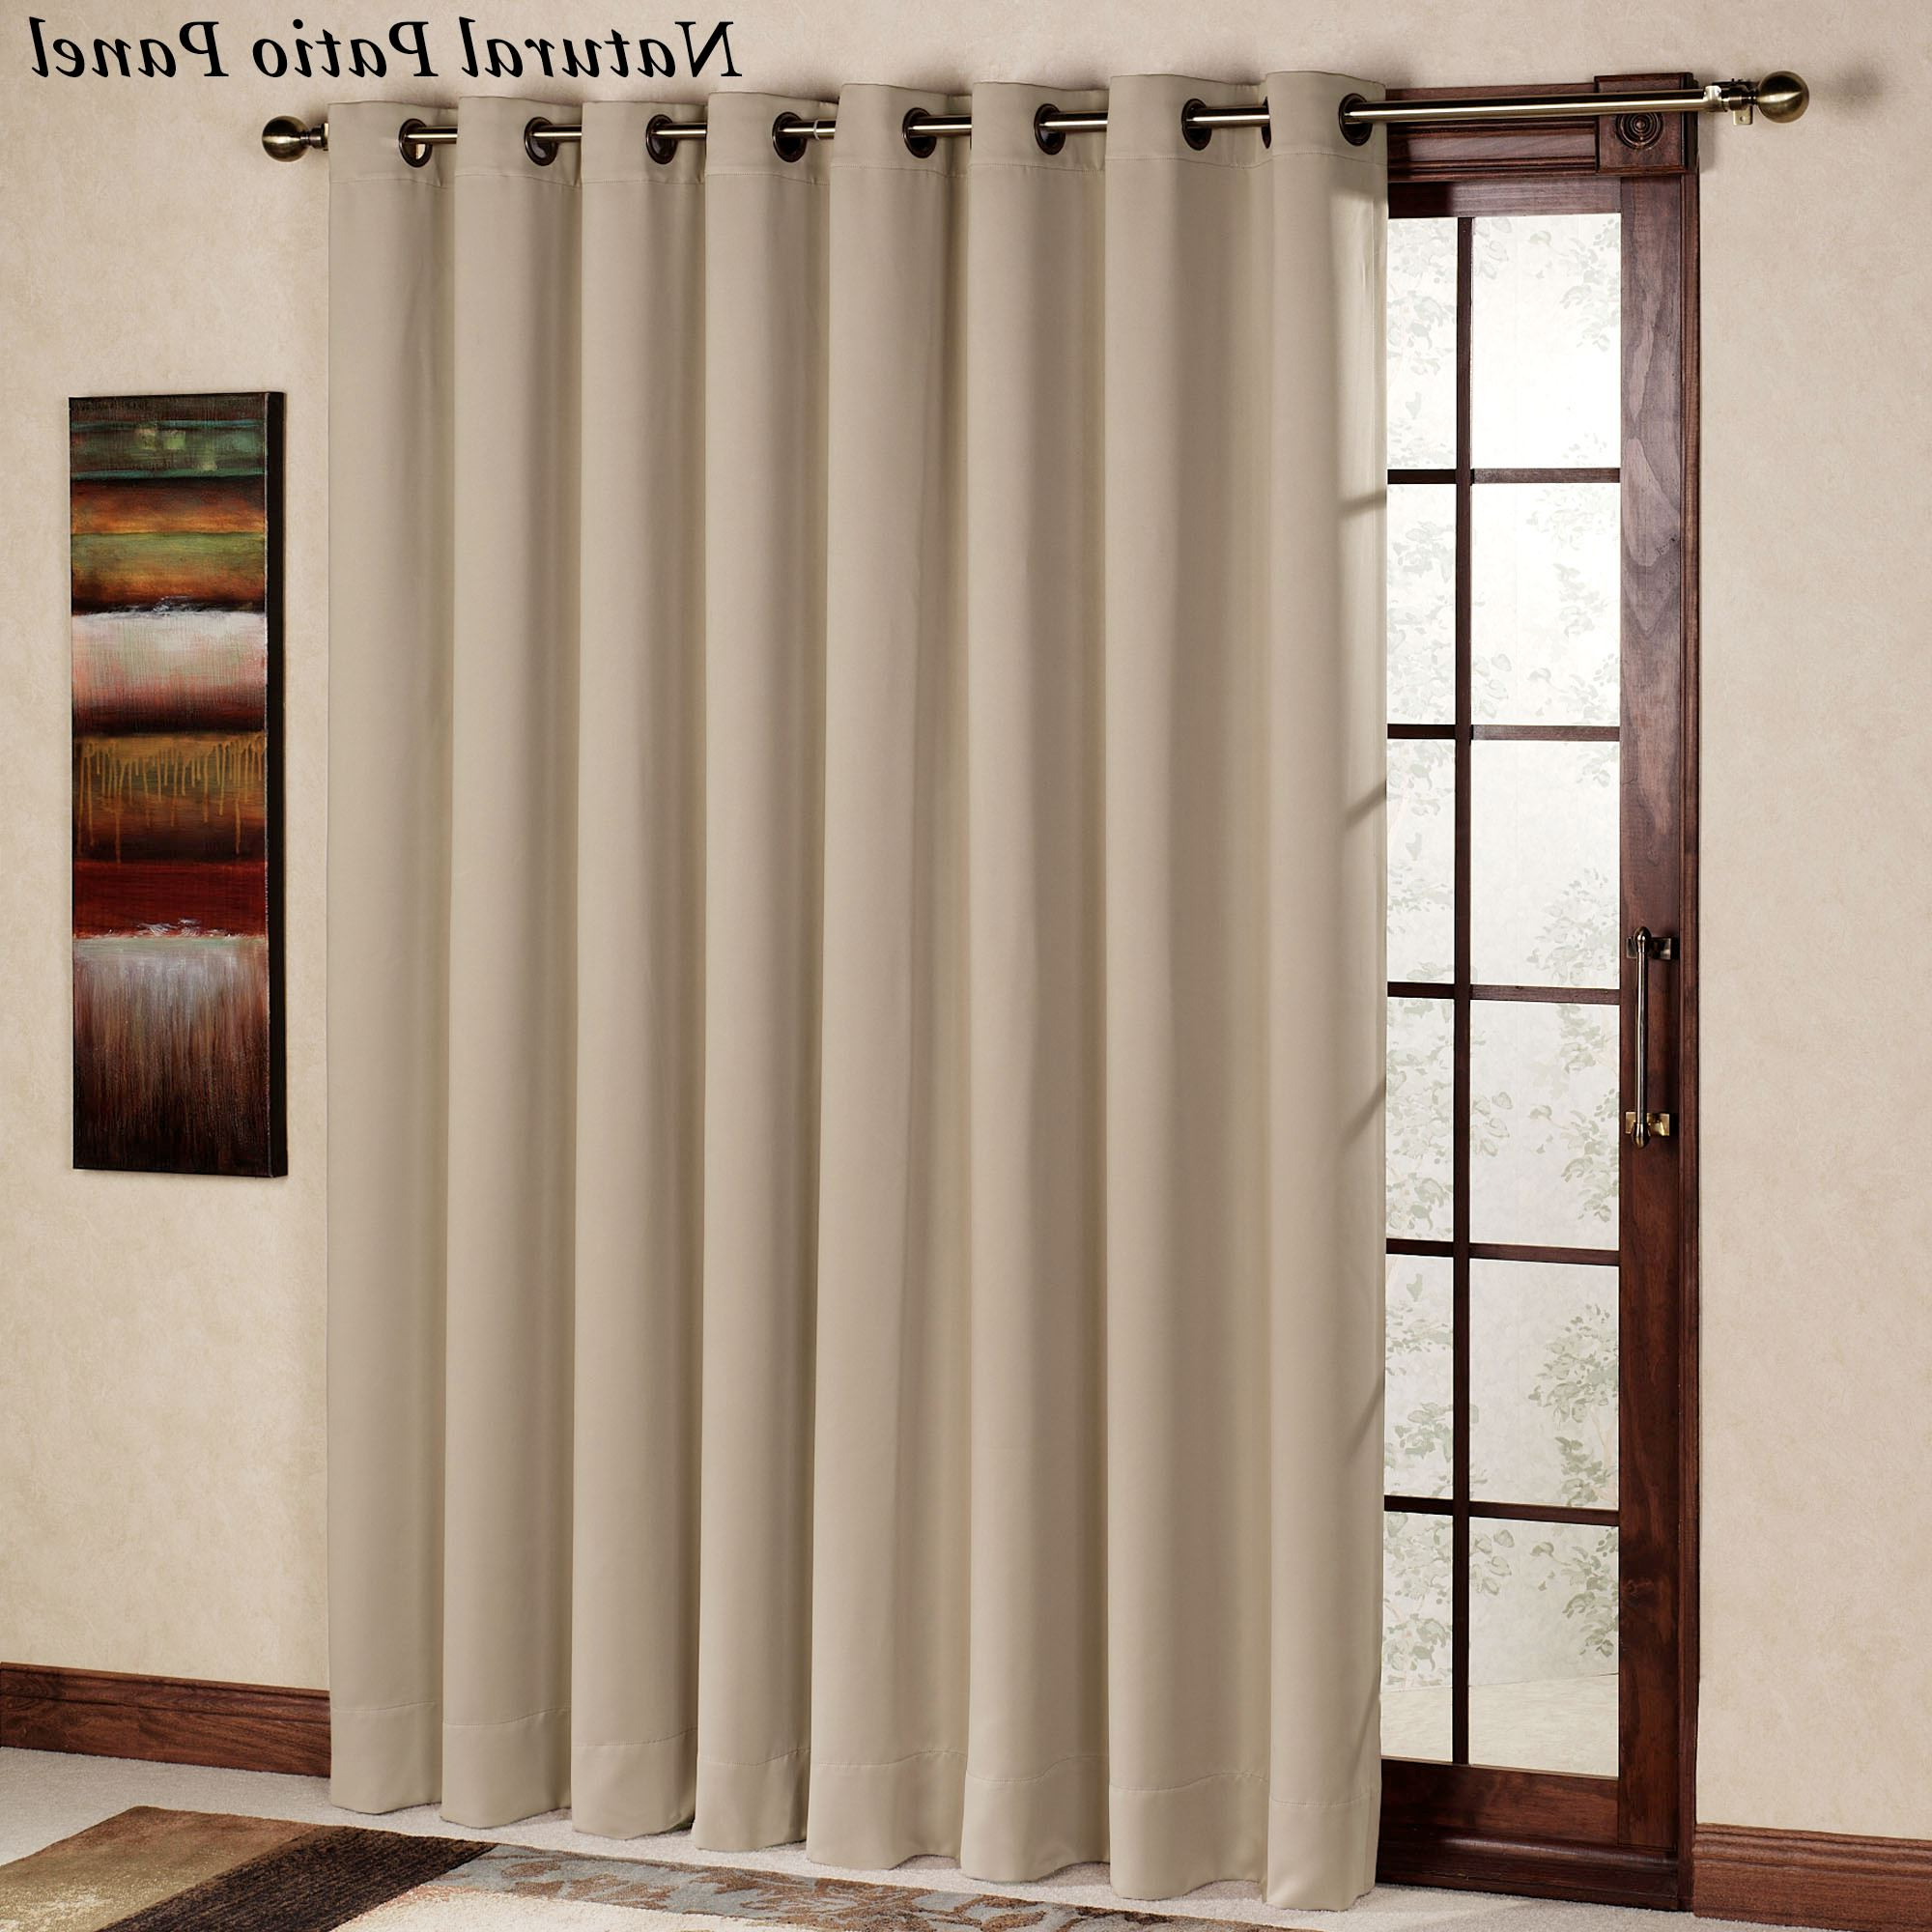 Preferred Ultimate Blackout Grommet Curtain Panel Throughout Ultimate Blackout Short Length Grommet Panels (View 8 of 20)